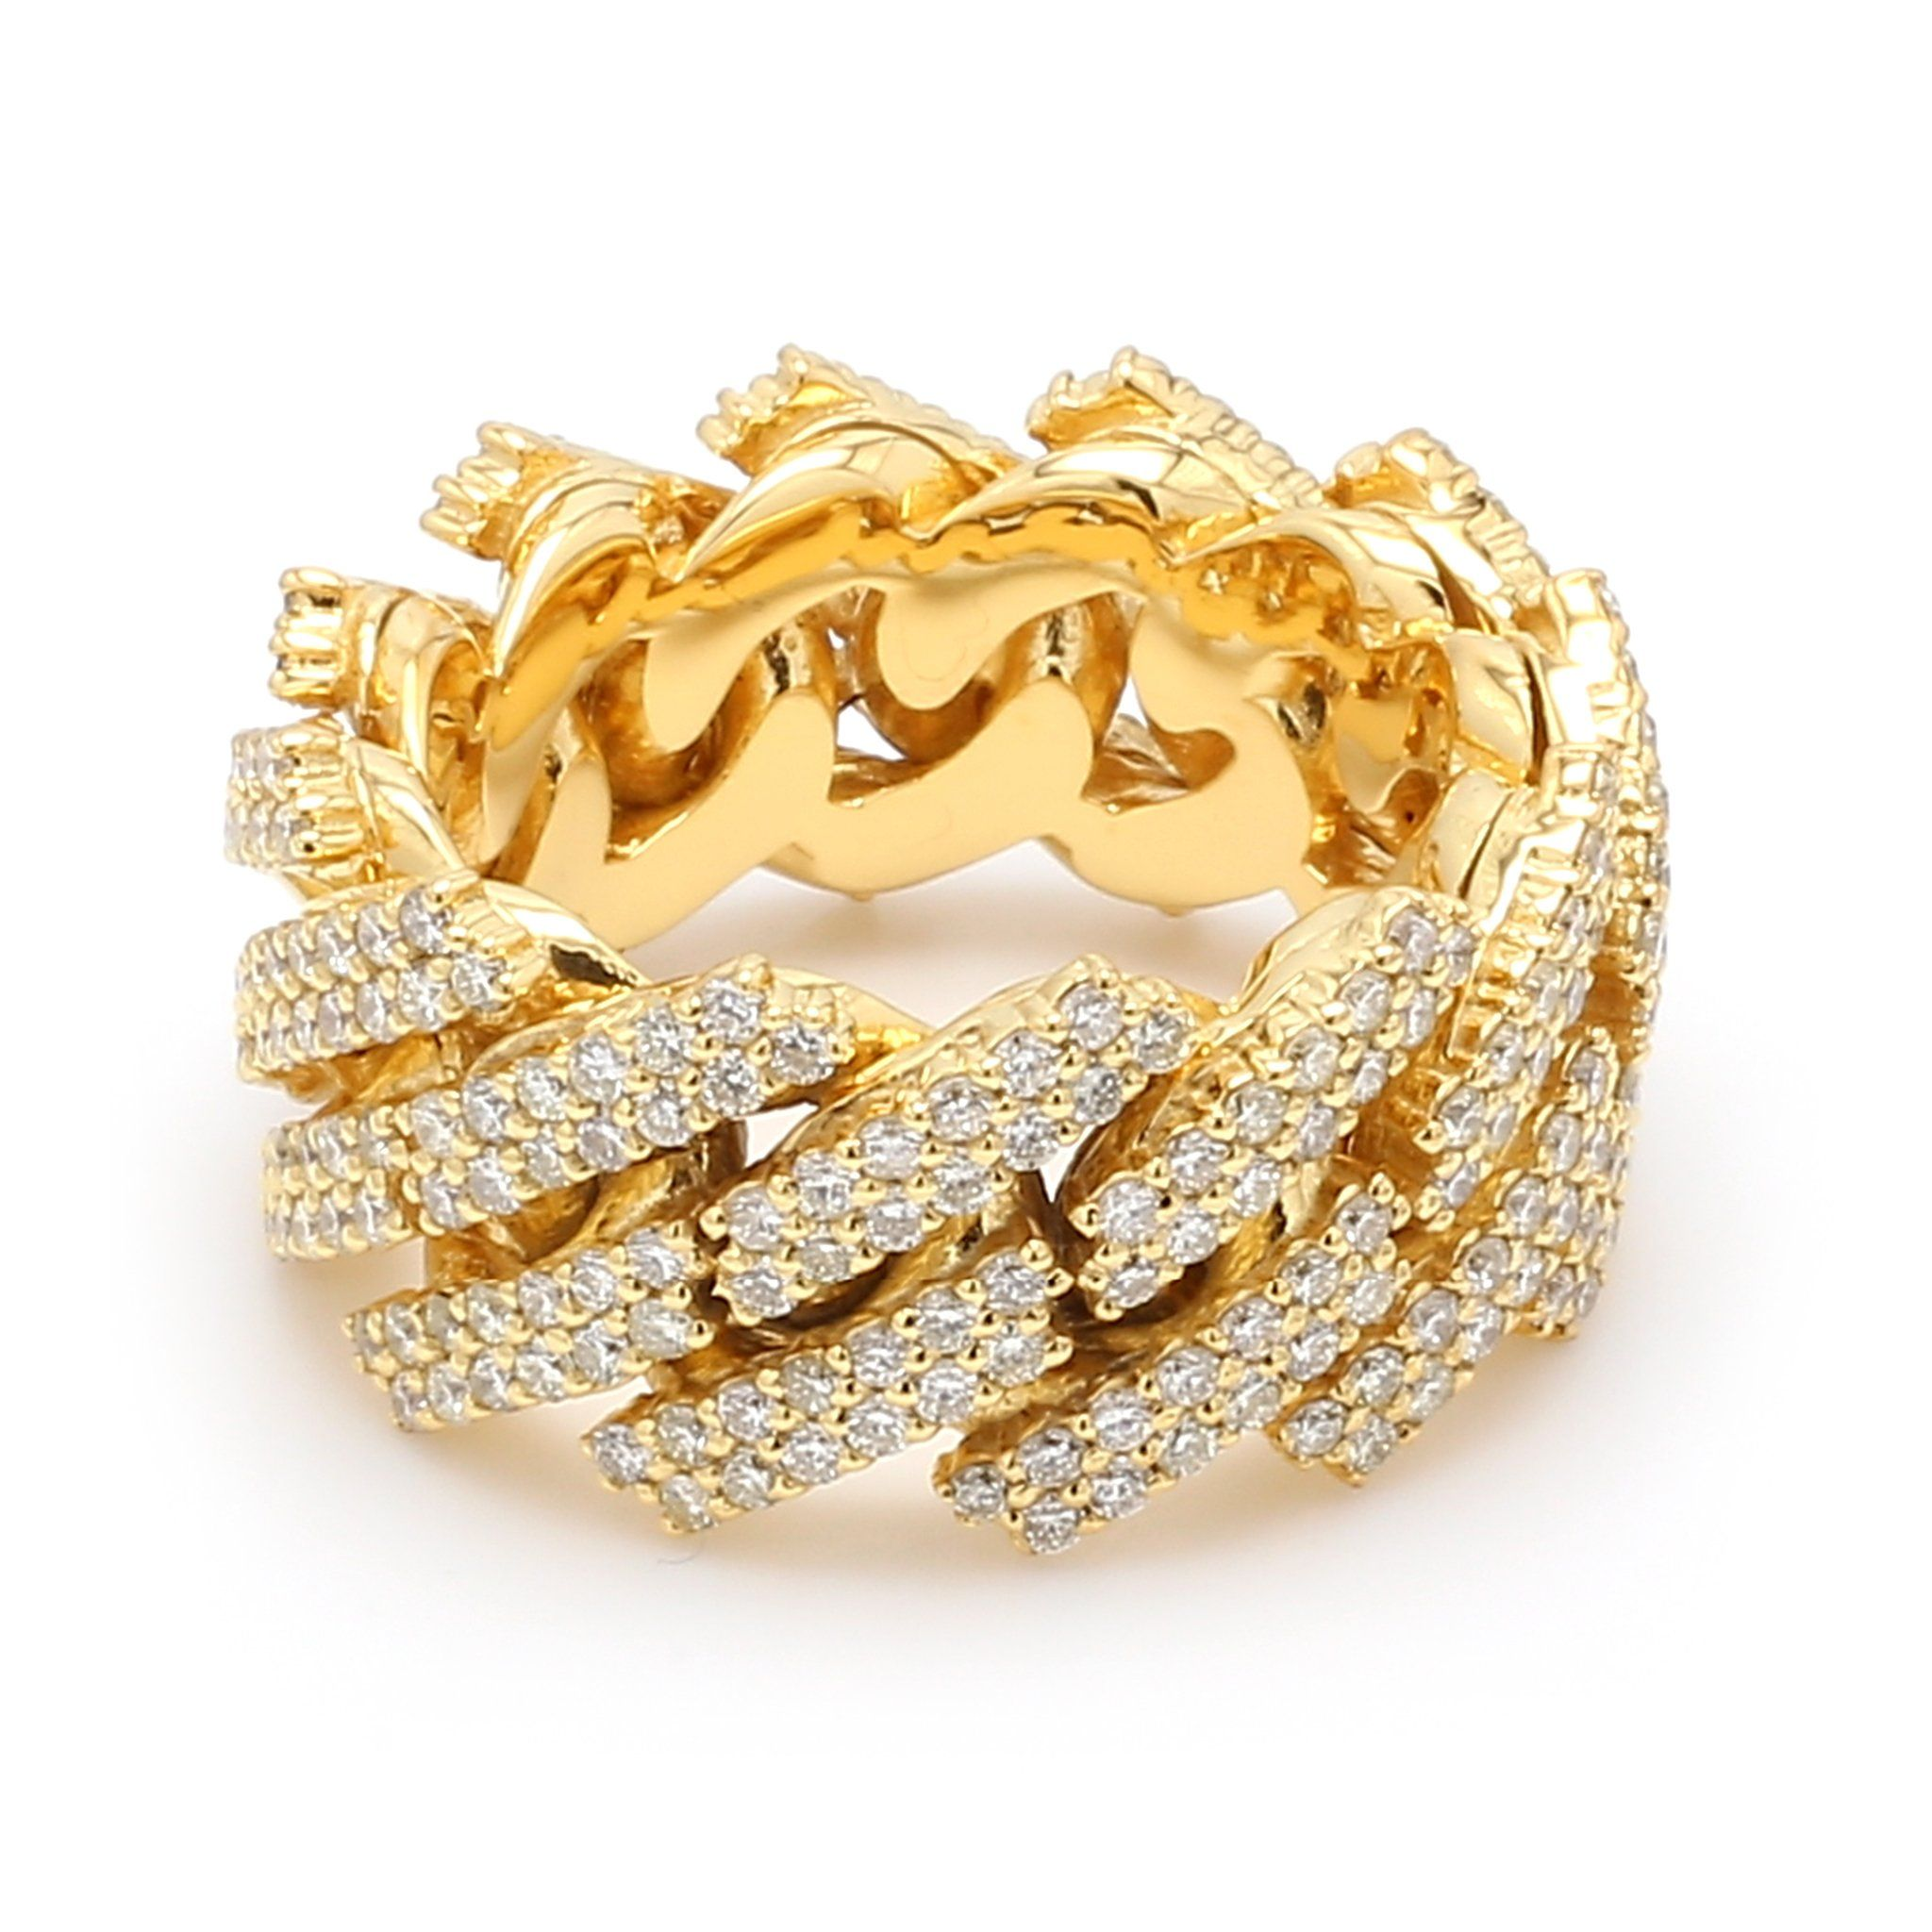 10k Solid Yellow Gold Diamond Cuban Link Ring In 2020 Linking Rings Colored Diamonds Gold Diamond